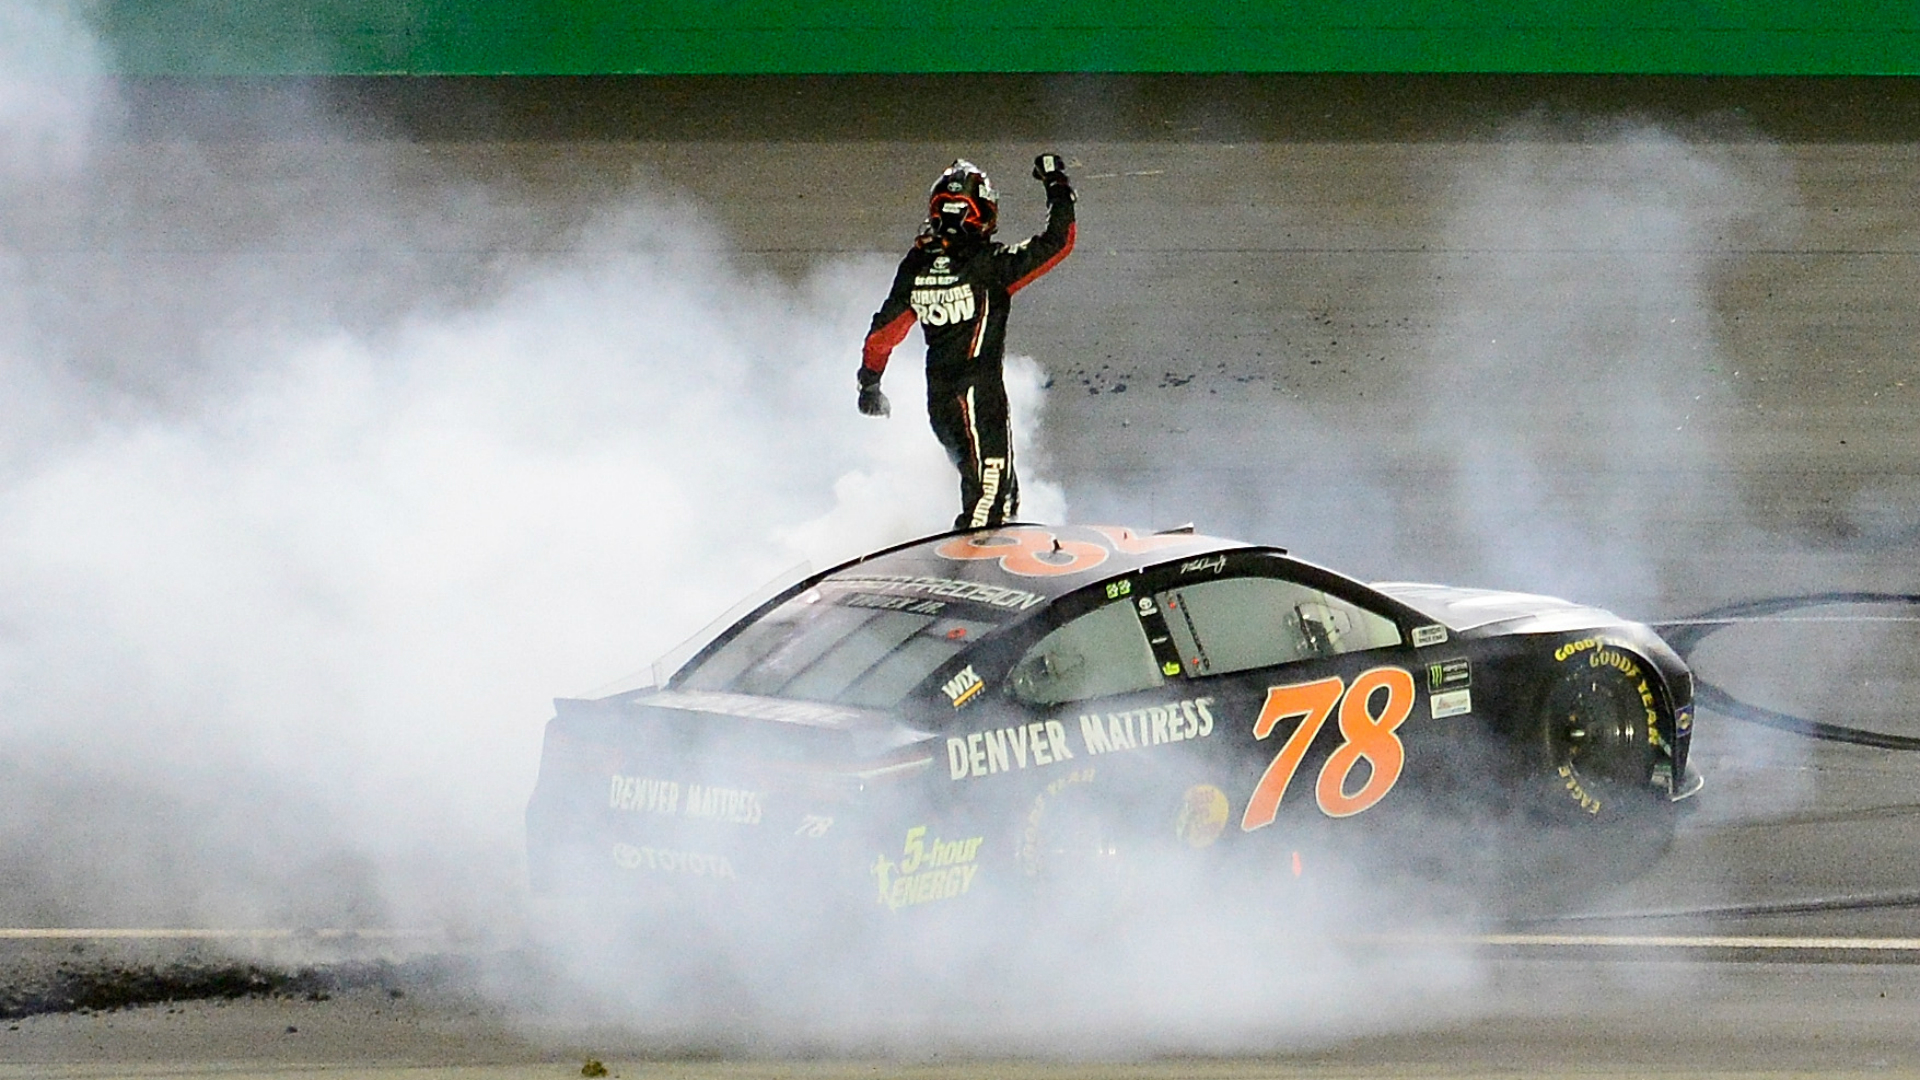 2017 NASCAR playoffs: Round of 12 standings, rules, schedule entering Talladega